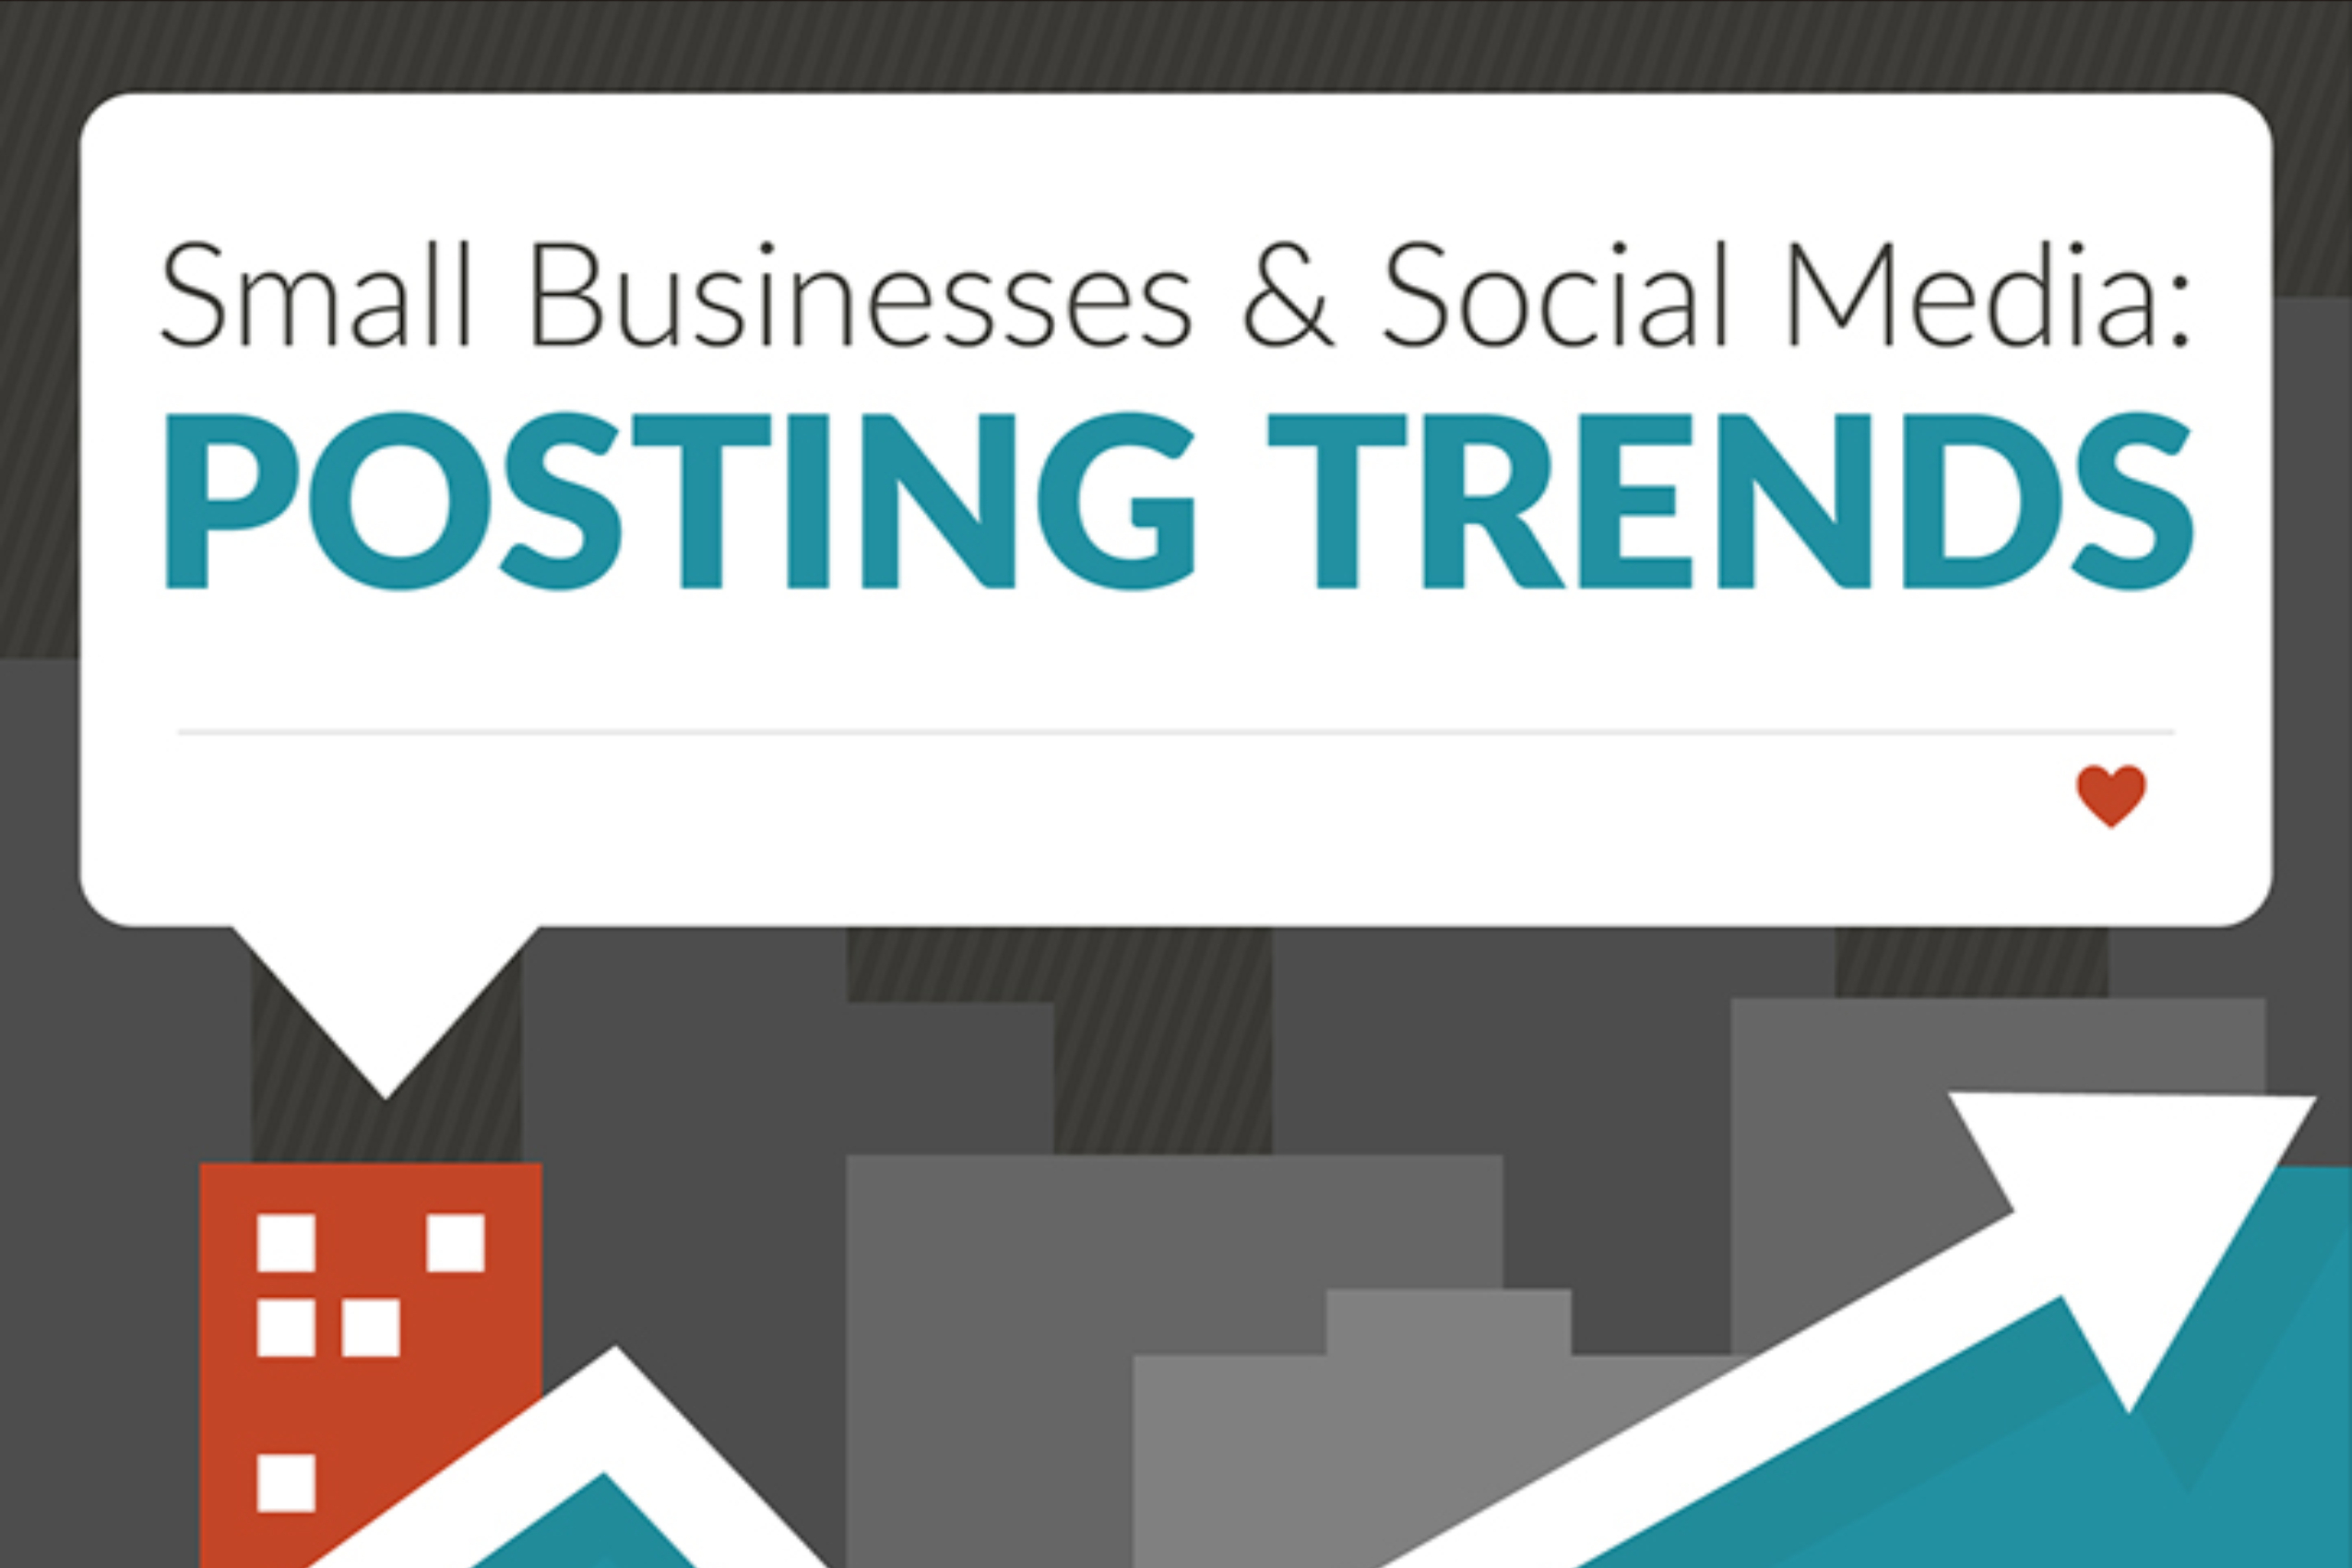 Social Media Trends For Small Business (infographic)